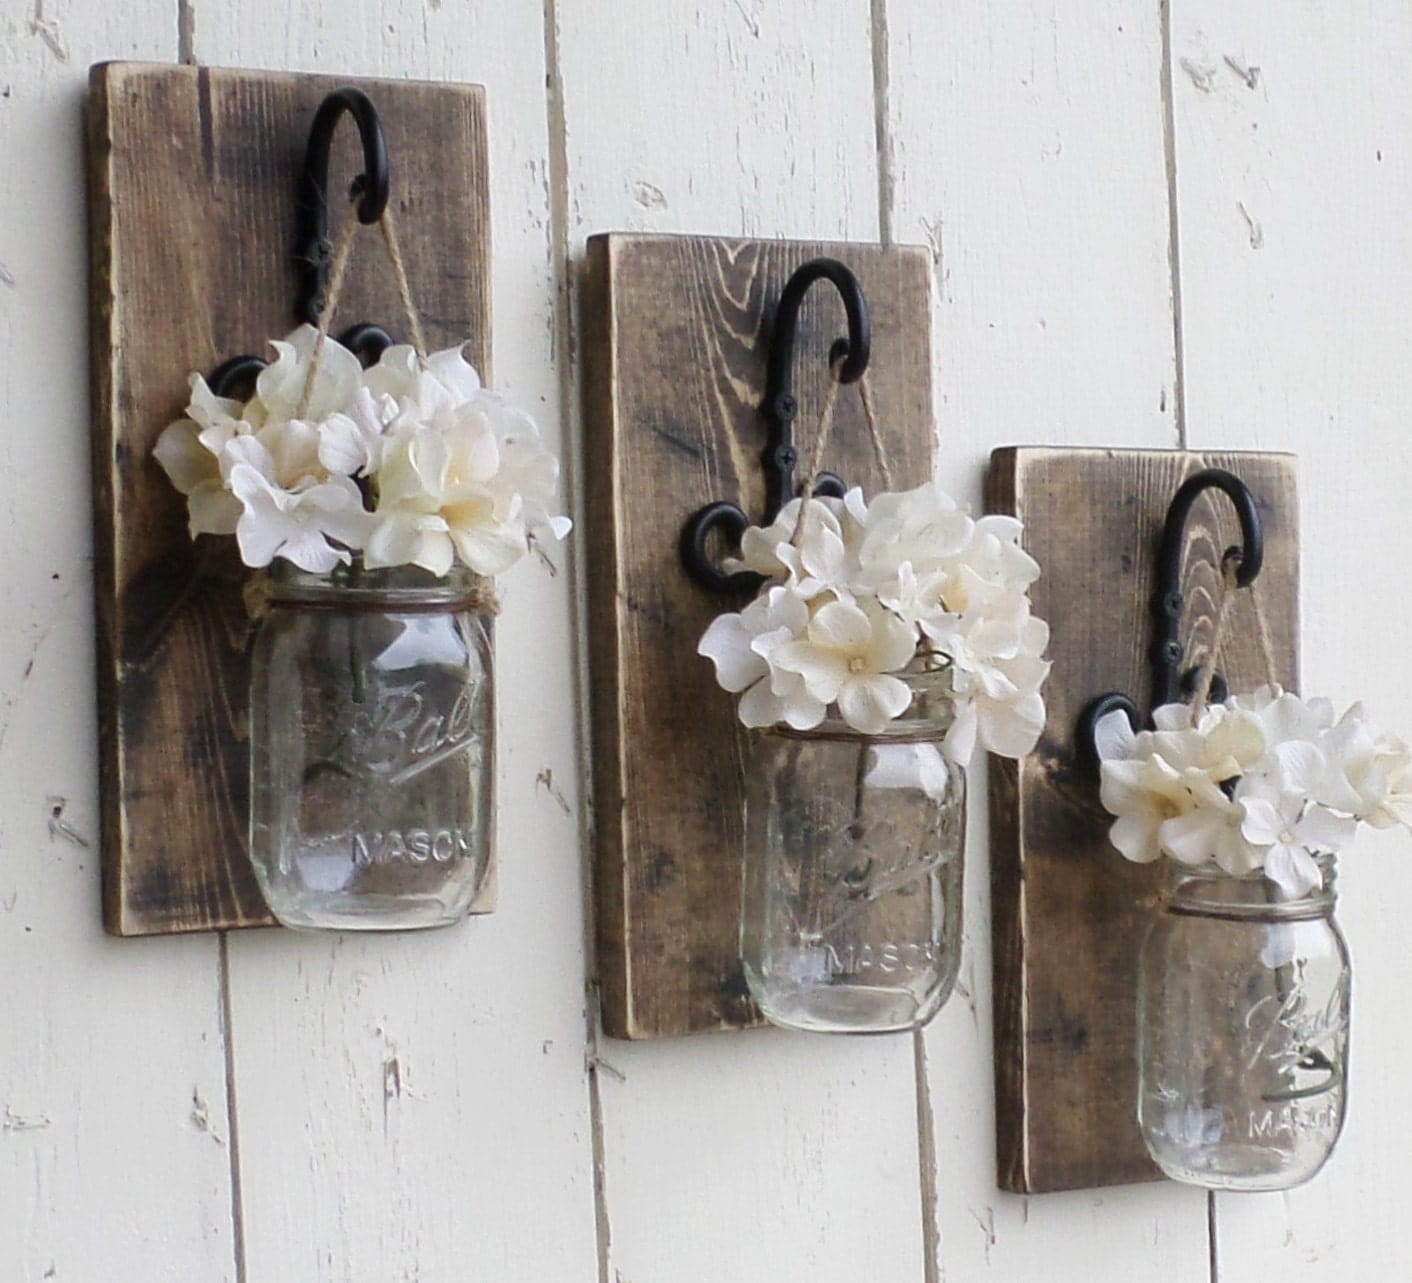 Homemade Rustic Wall Decor : New rustic farmhouse wood wall decor by